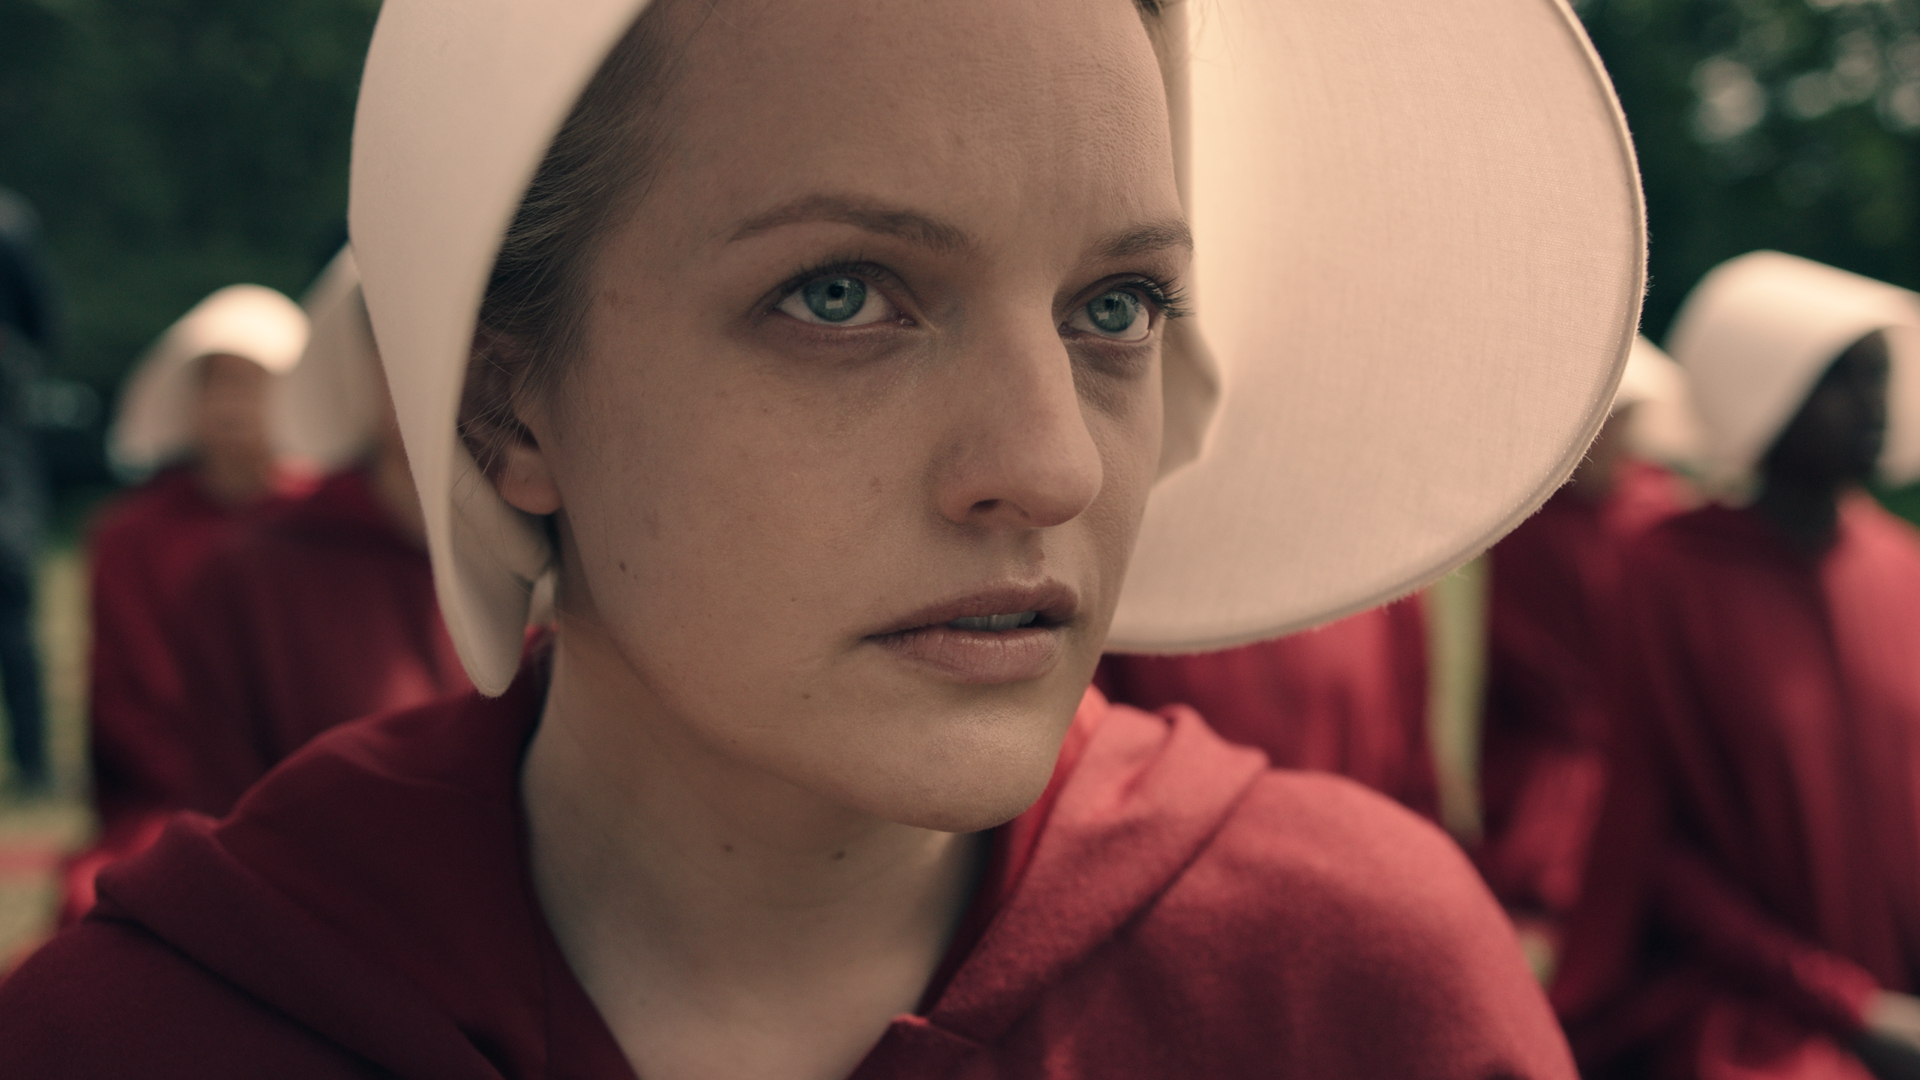 'The Handmaid's Tale': How Director Reed Morano Made Margaret Atwood's Classic Novel Cinematic